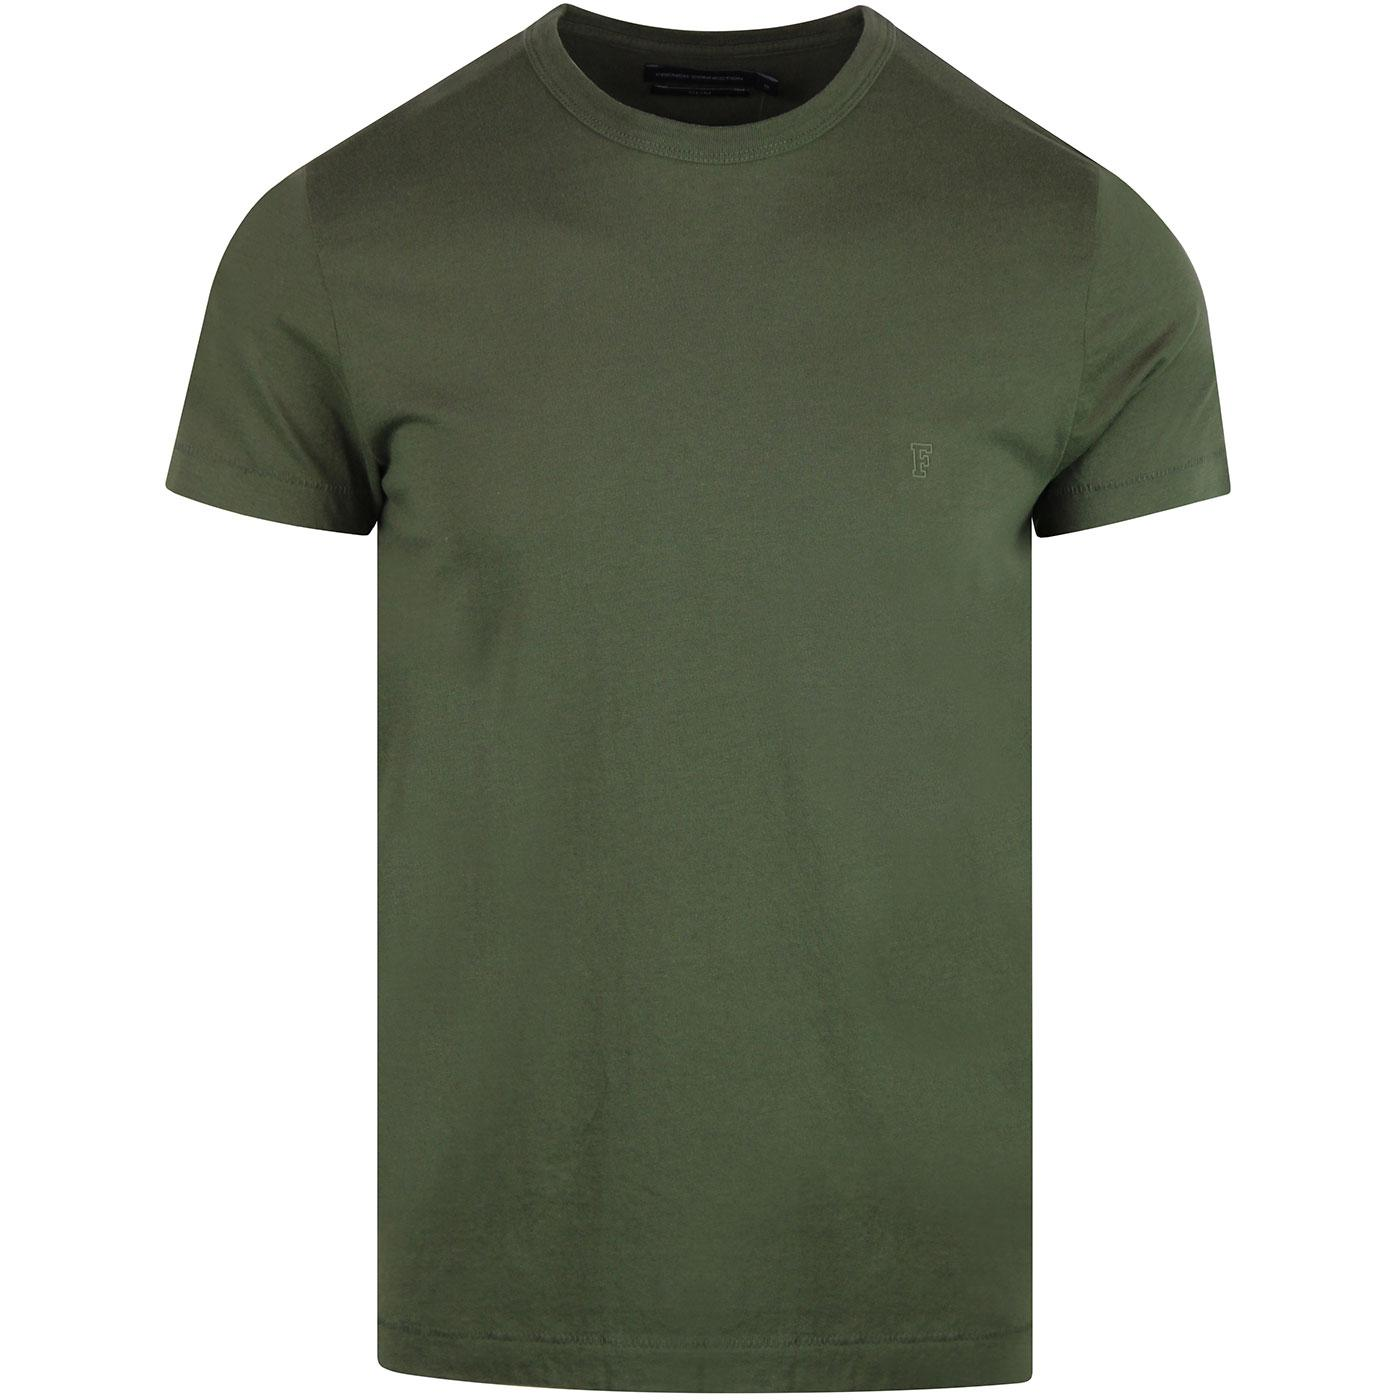 FRENCH CONNECTION Basic Slim Crew Neck Tee - Green